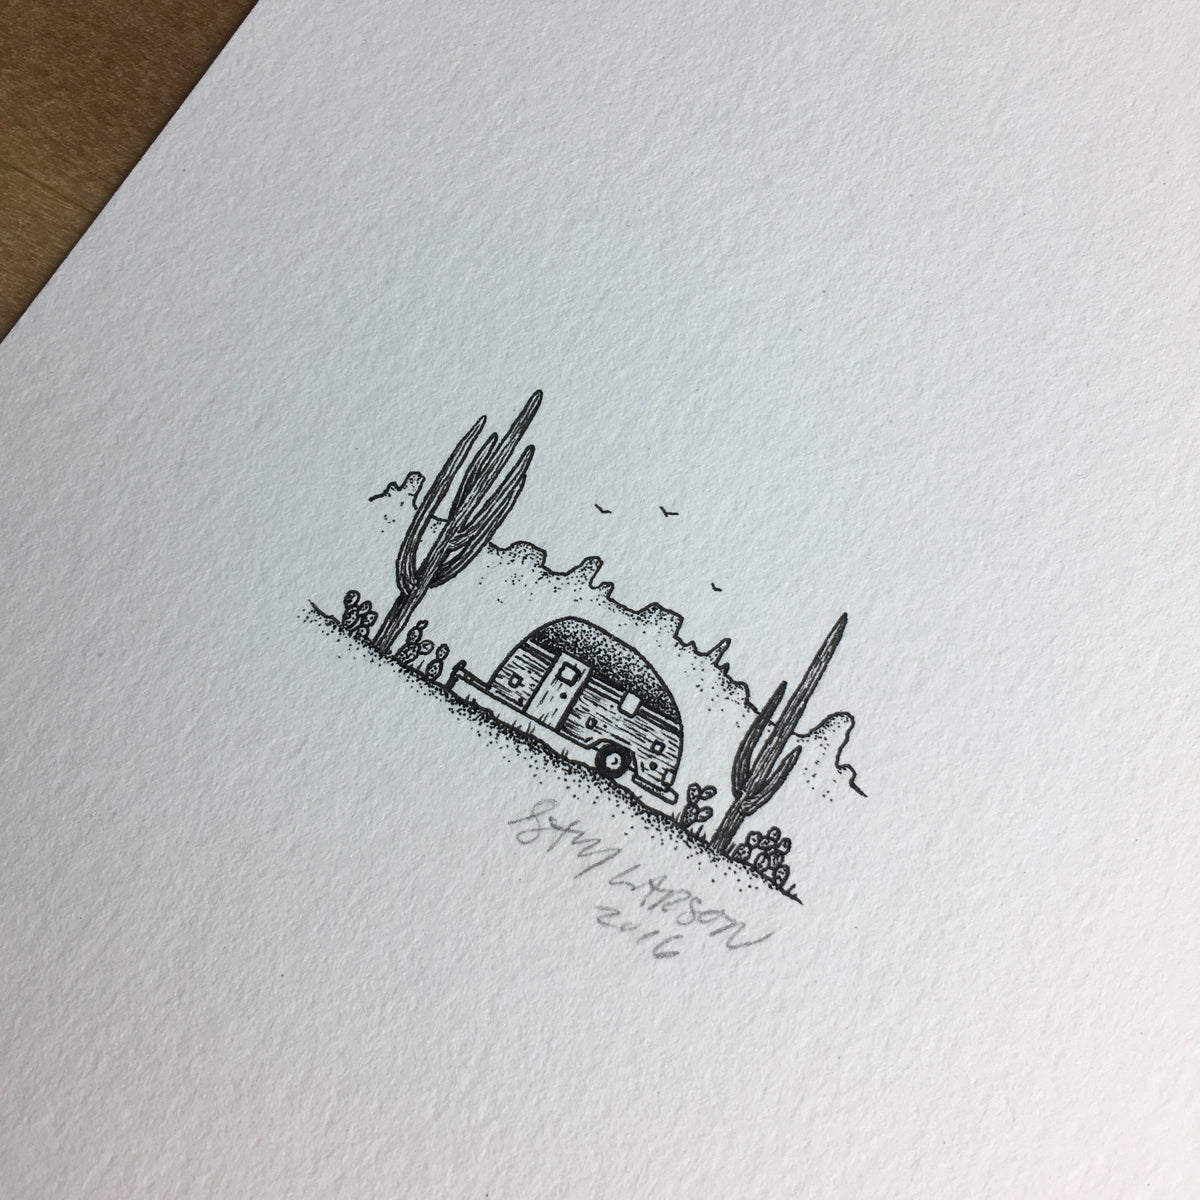 Desert Trailer - Original Illustration 5x7in